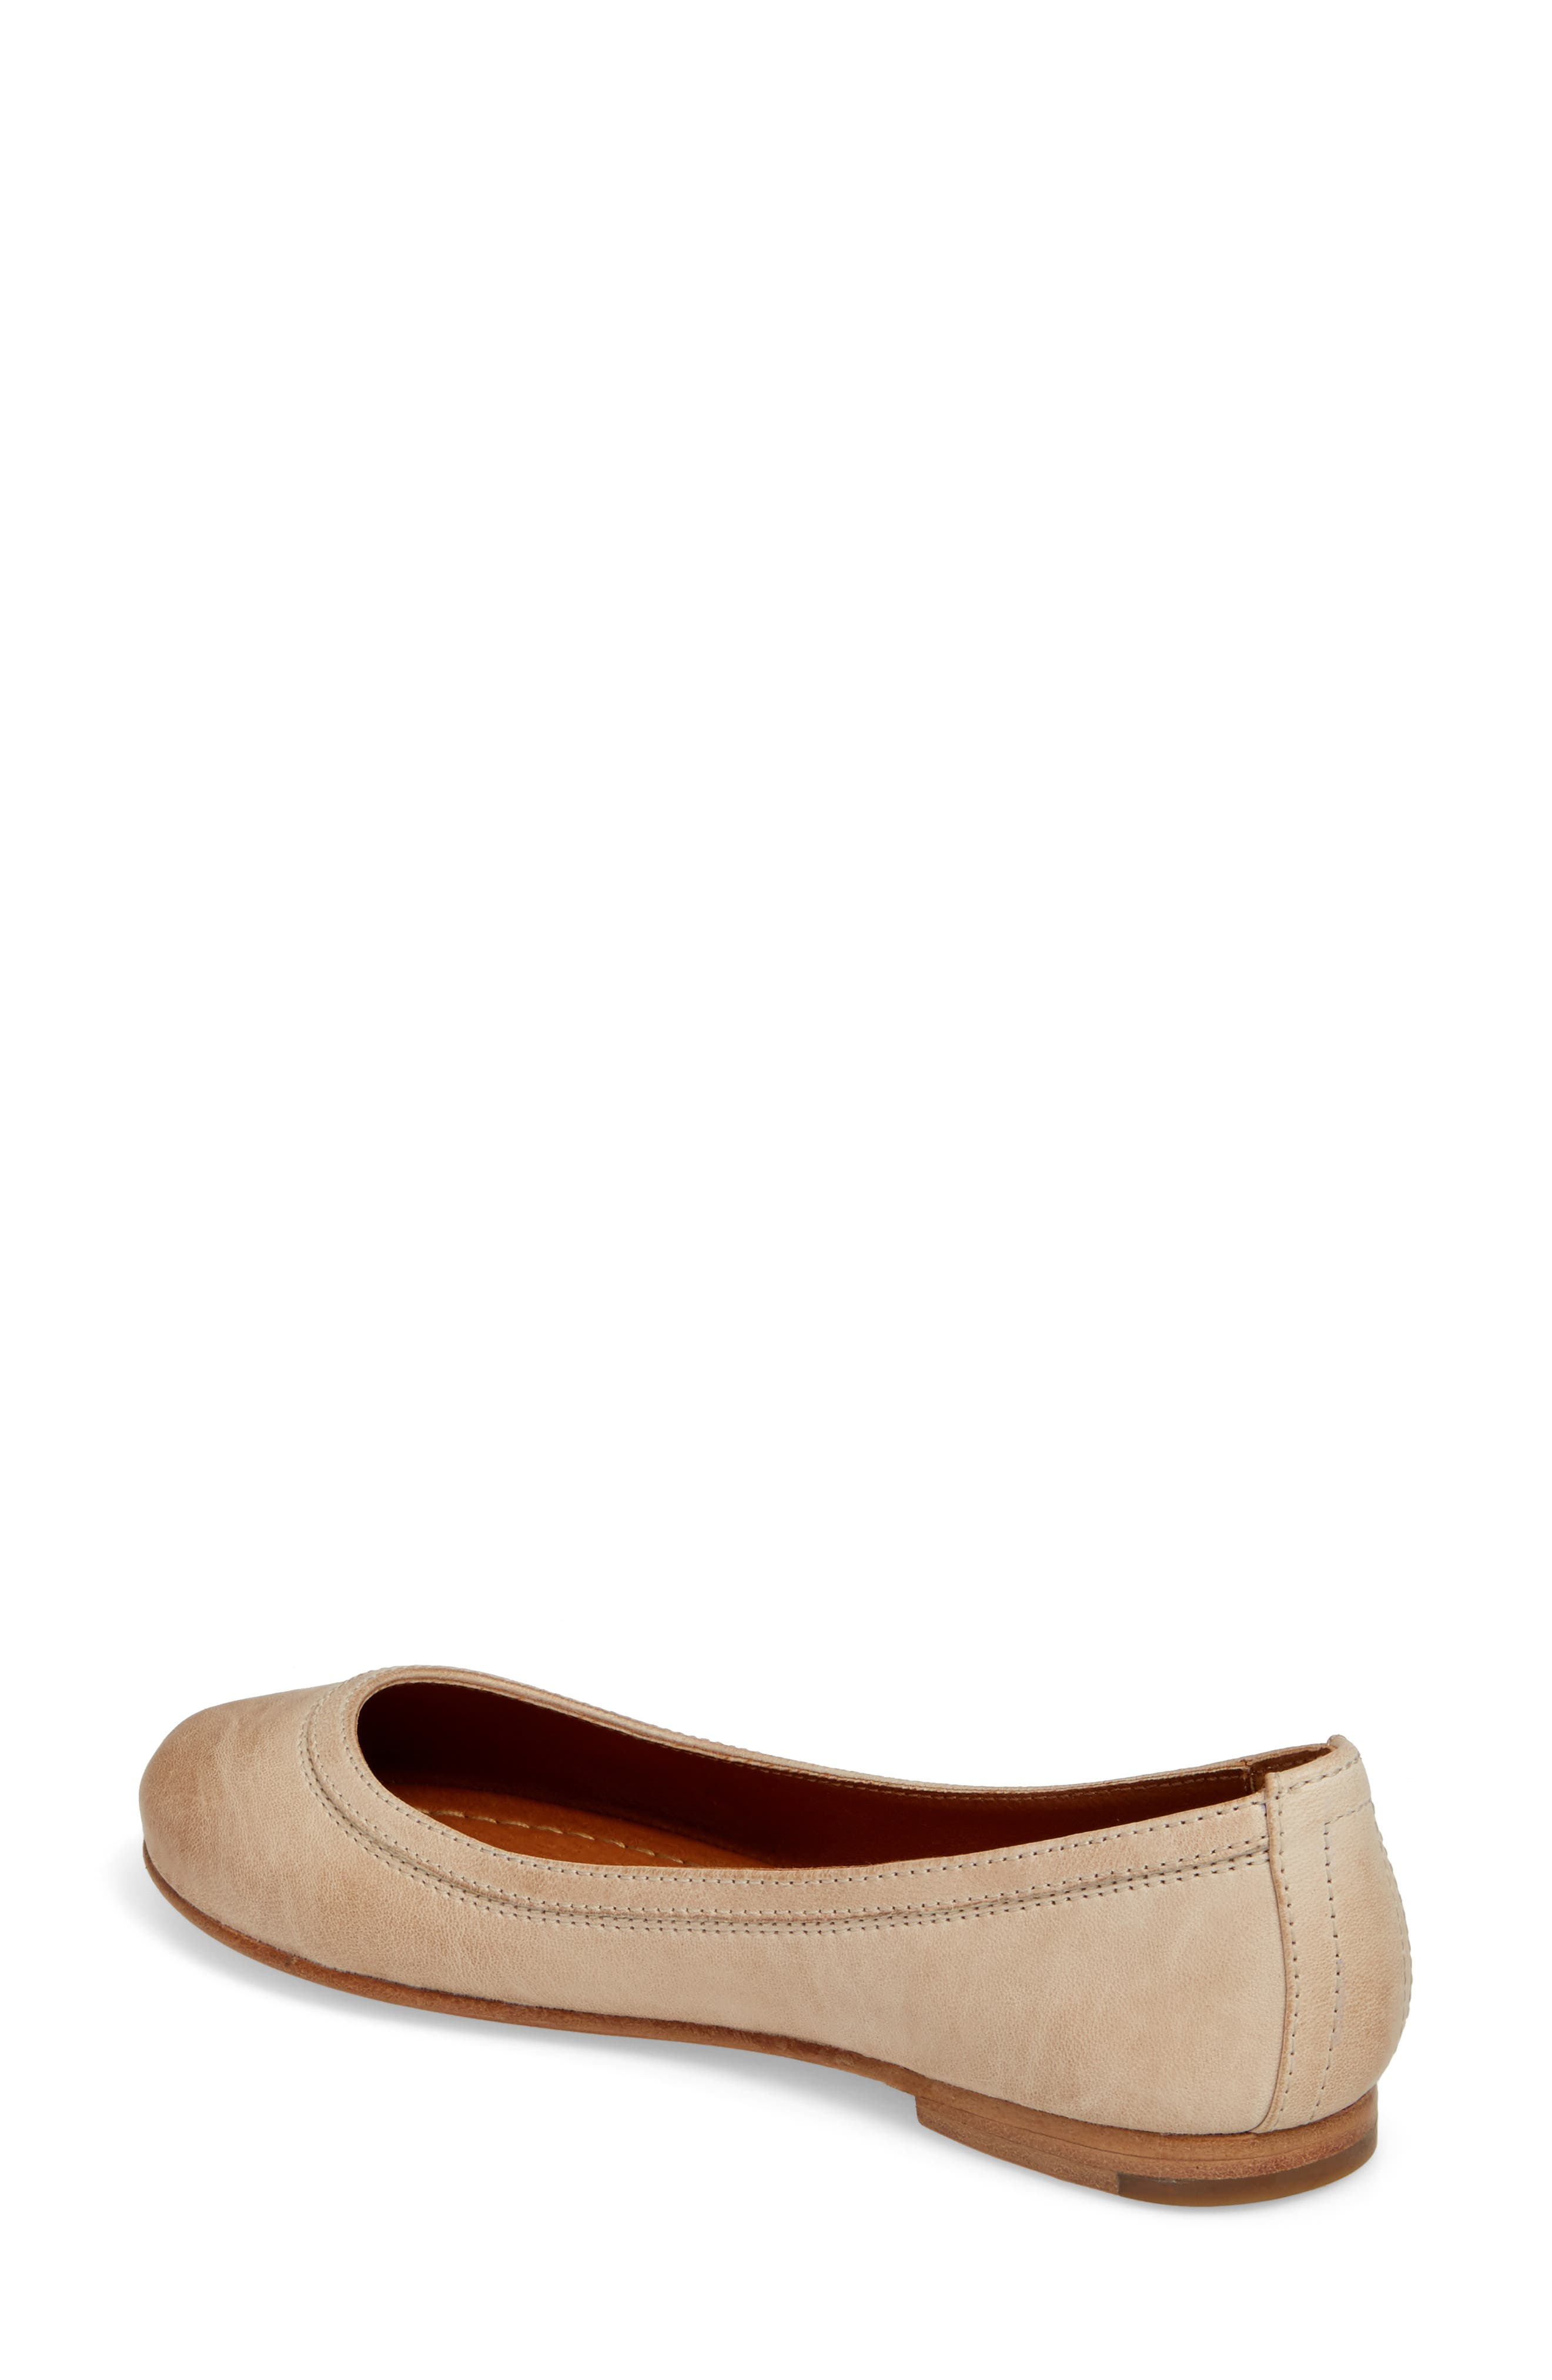 'Carson' Ballet Flat,                             Alternate thumbnail 3, color,                             CREAM LEATHER